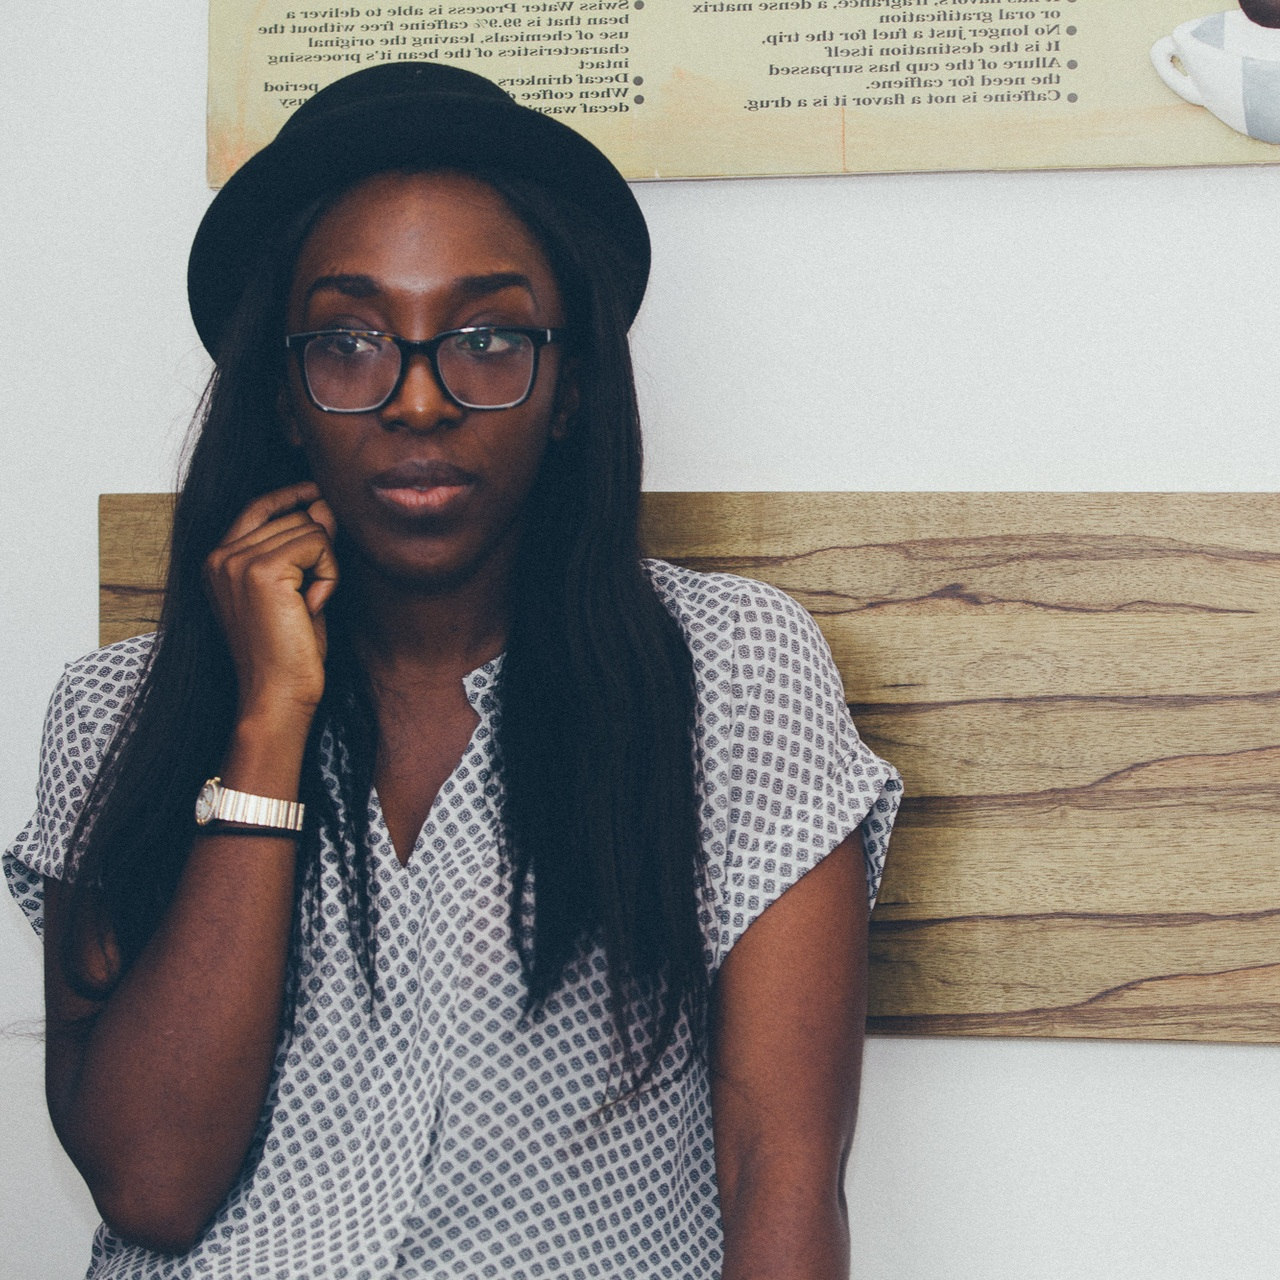 Olamiposi Somoye - Currently Instructor at the Fashion Institute of Design and Merchandising, Los Angeles and a Denim Pattern Maker at Uniqlo, Olamiposi was born and raised in Lagos, Nigeria. Olamiposi moved to Los Angeles in 2017 to attend her Alma Mater where she graduated with an Associate's of Arts in Fashion Design and a Bachelors in Business Management. Upon graduation she moved back to her home country where she founded her clothing line Rayo and consulted for other brands, eventually making her way back to Los Angeles.Olamiposi is mostly known in the industry as a pattern maker, but she is also a Creative and Art Director for editorials, she recently debuted as a Costume Designer with her work published in Paper Magazine's website.